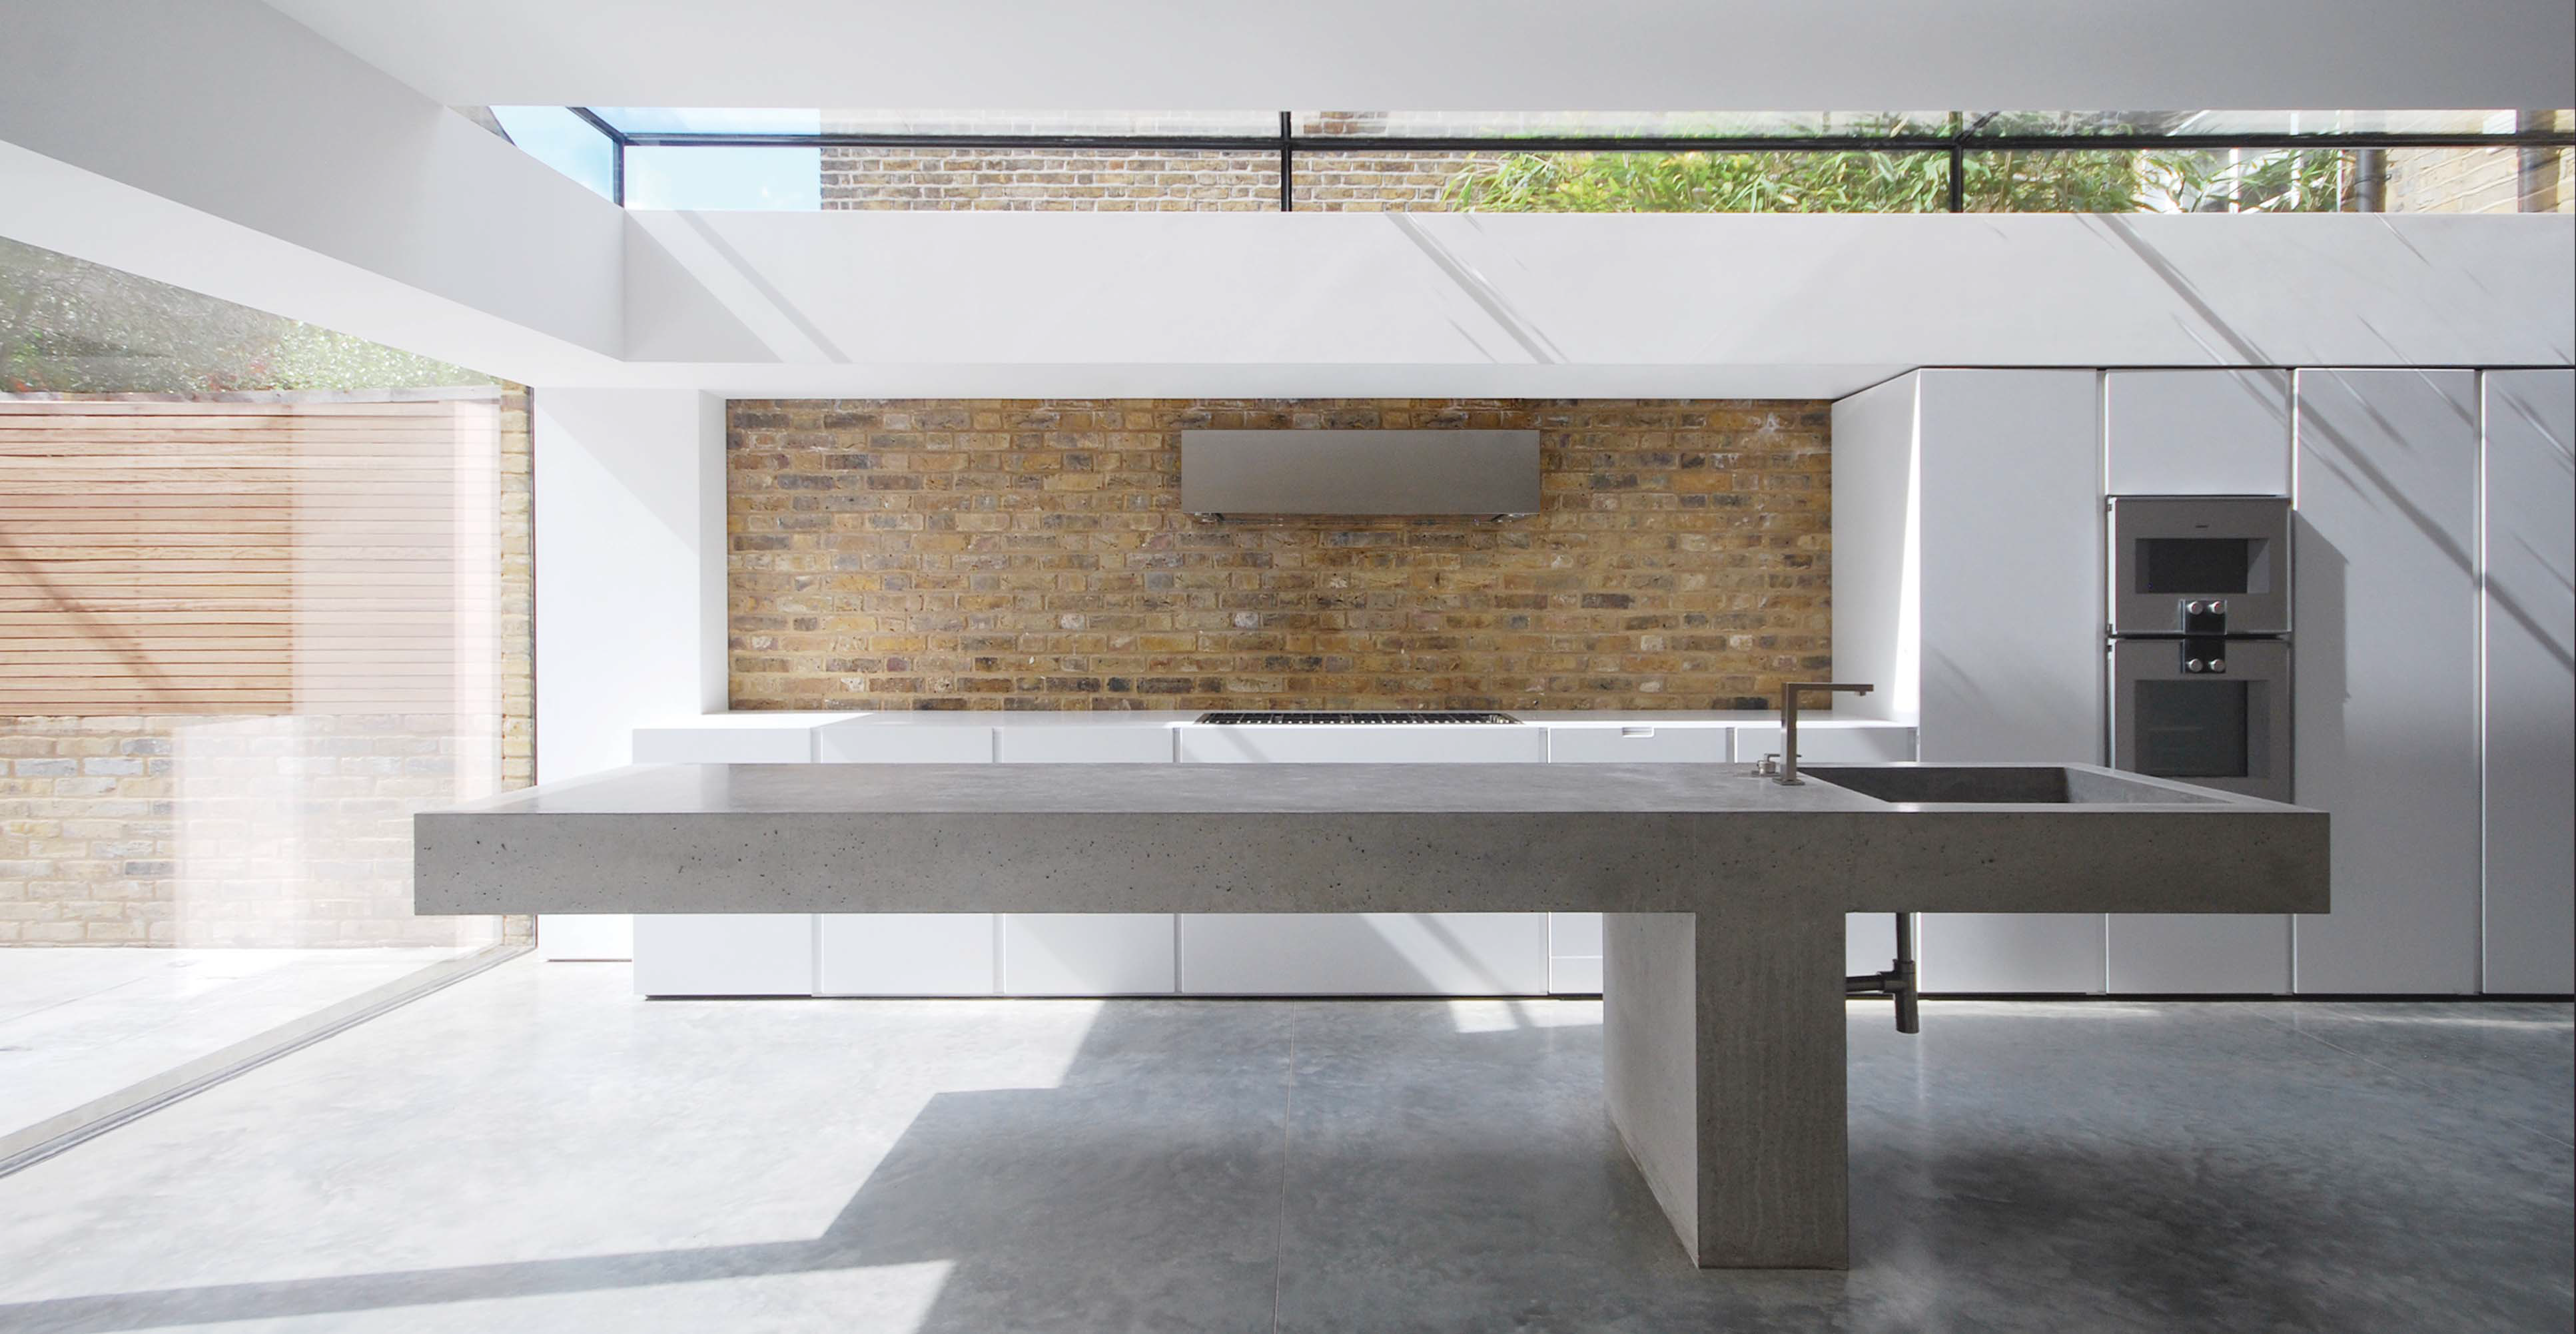 completed earlier this year, this lazenby cantilevered work top